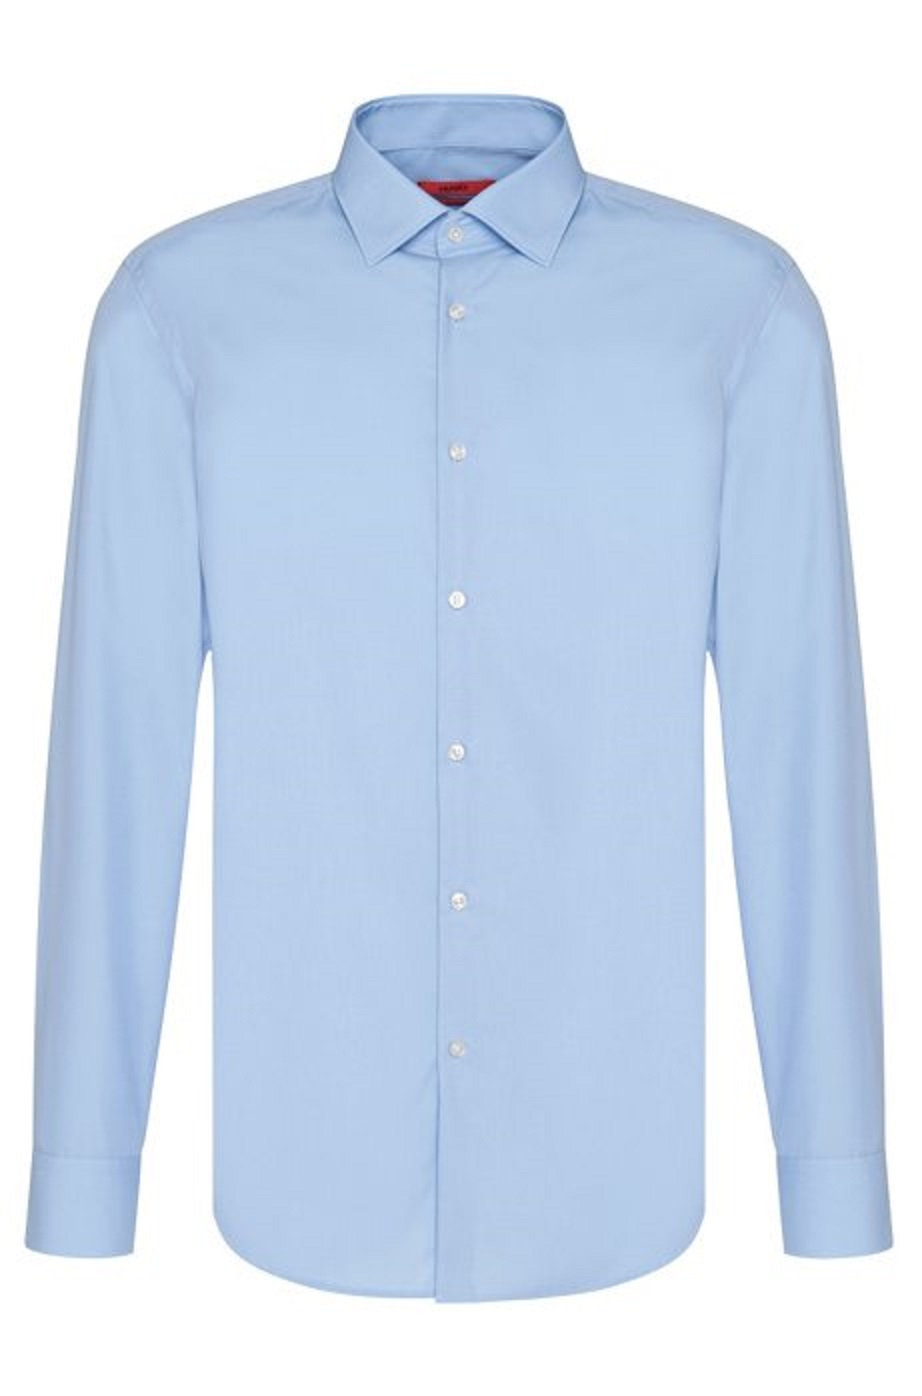 Hugo Boss Camicia SLIM FIT COTONE EASY IRON  Mod. C-JENNO 50289499